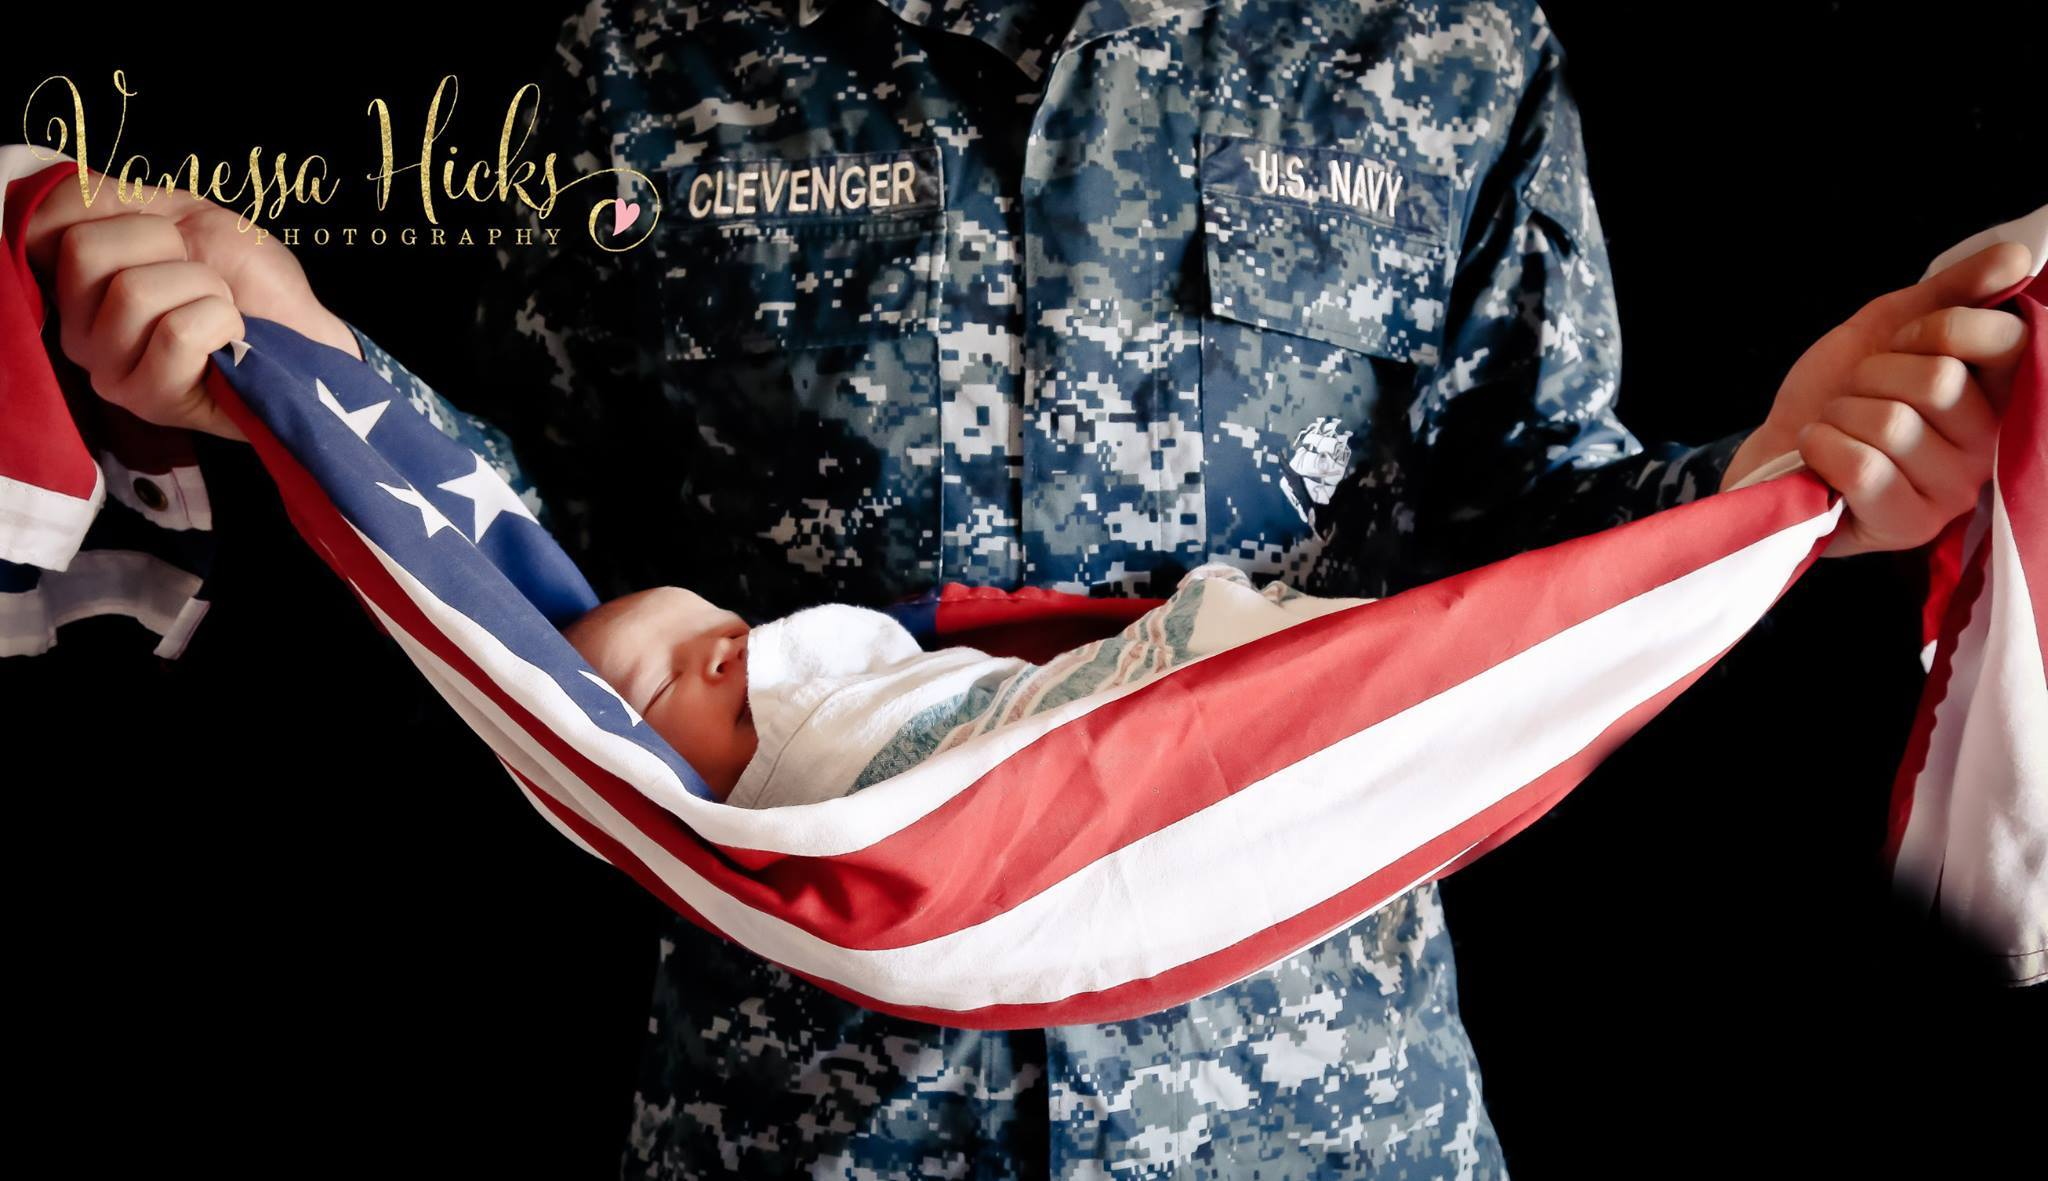 Va. photographer captures controversial photo of baby wrapped in American flag